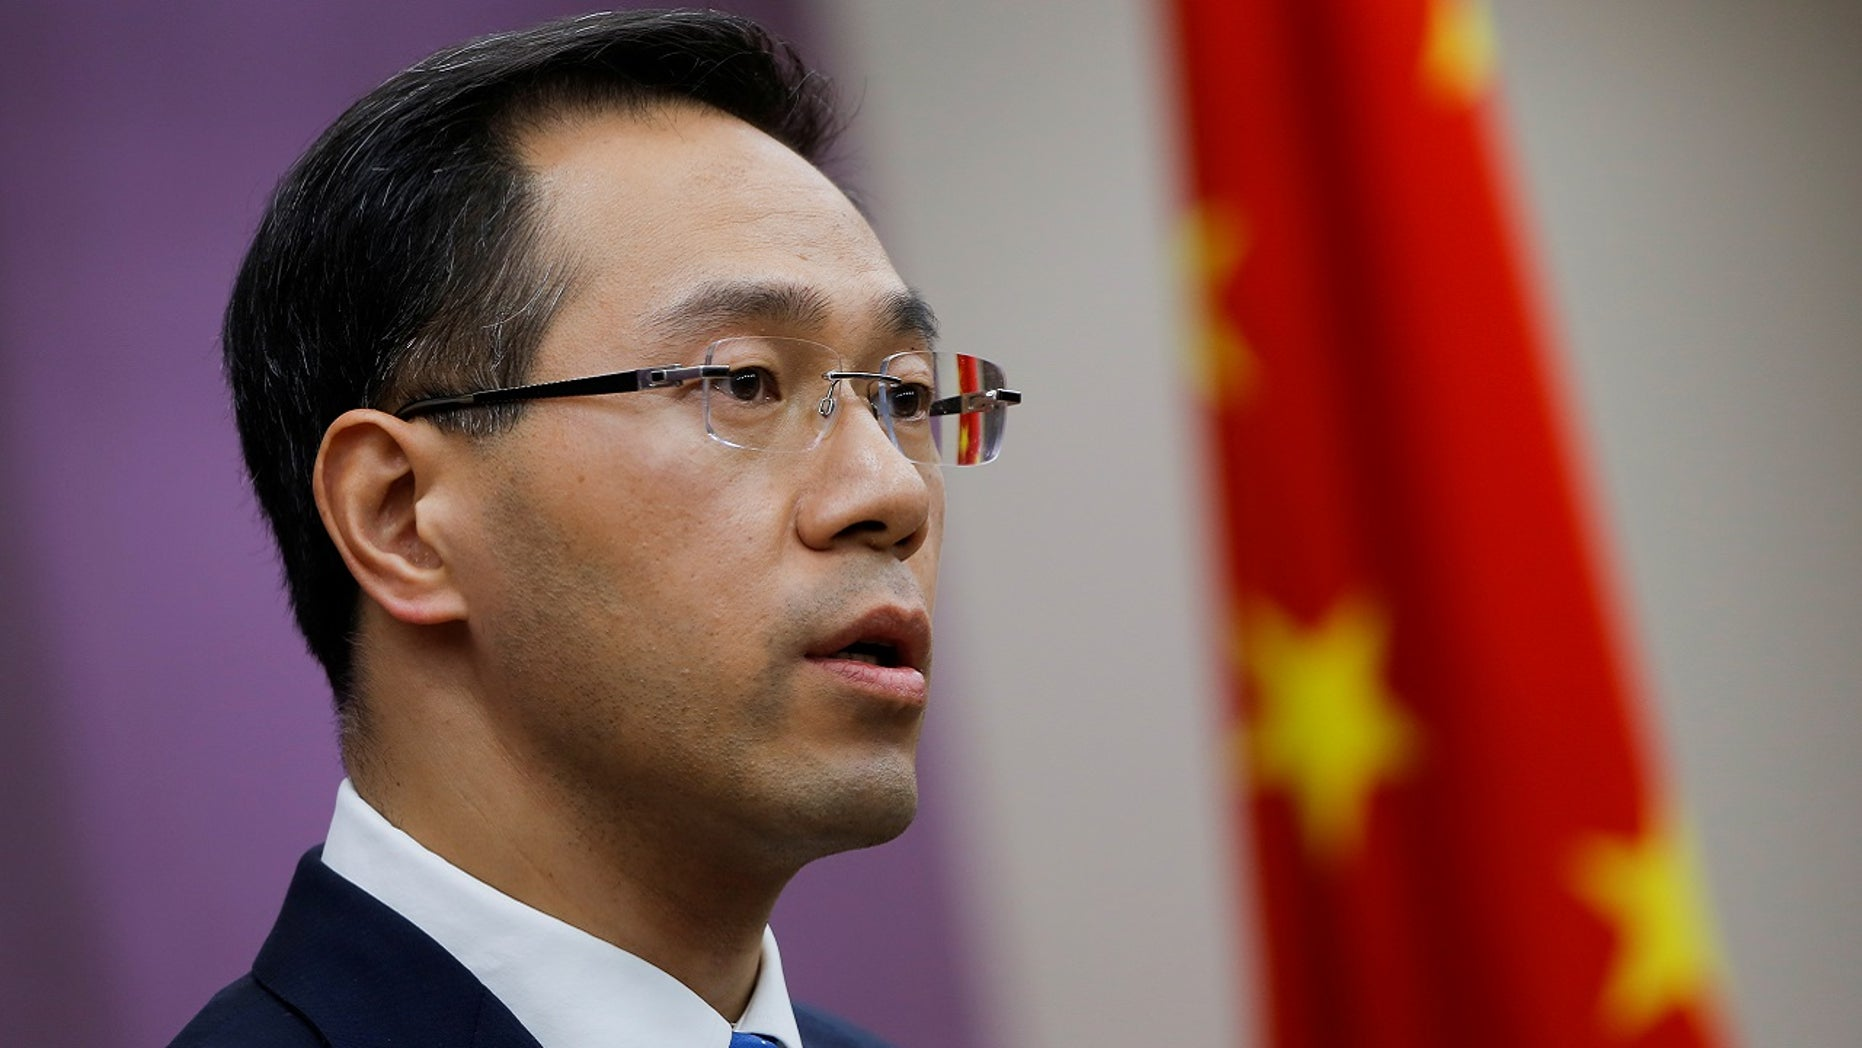 Gao Feng, a spokesman for China's Ministry of Commerce, addresses reporters in Beijing, April 6, 2018.